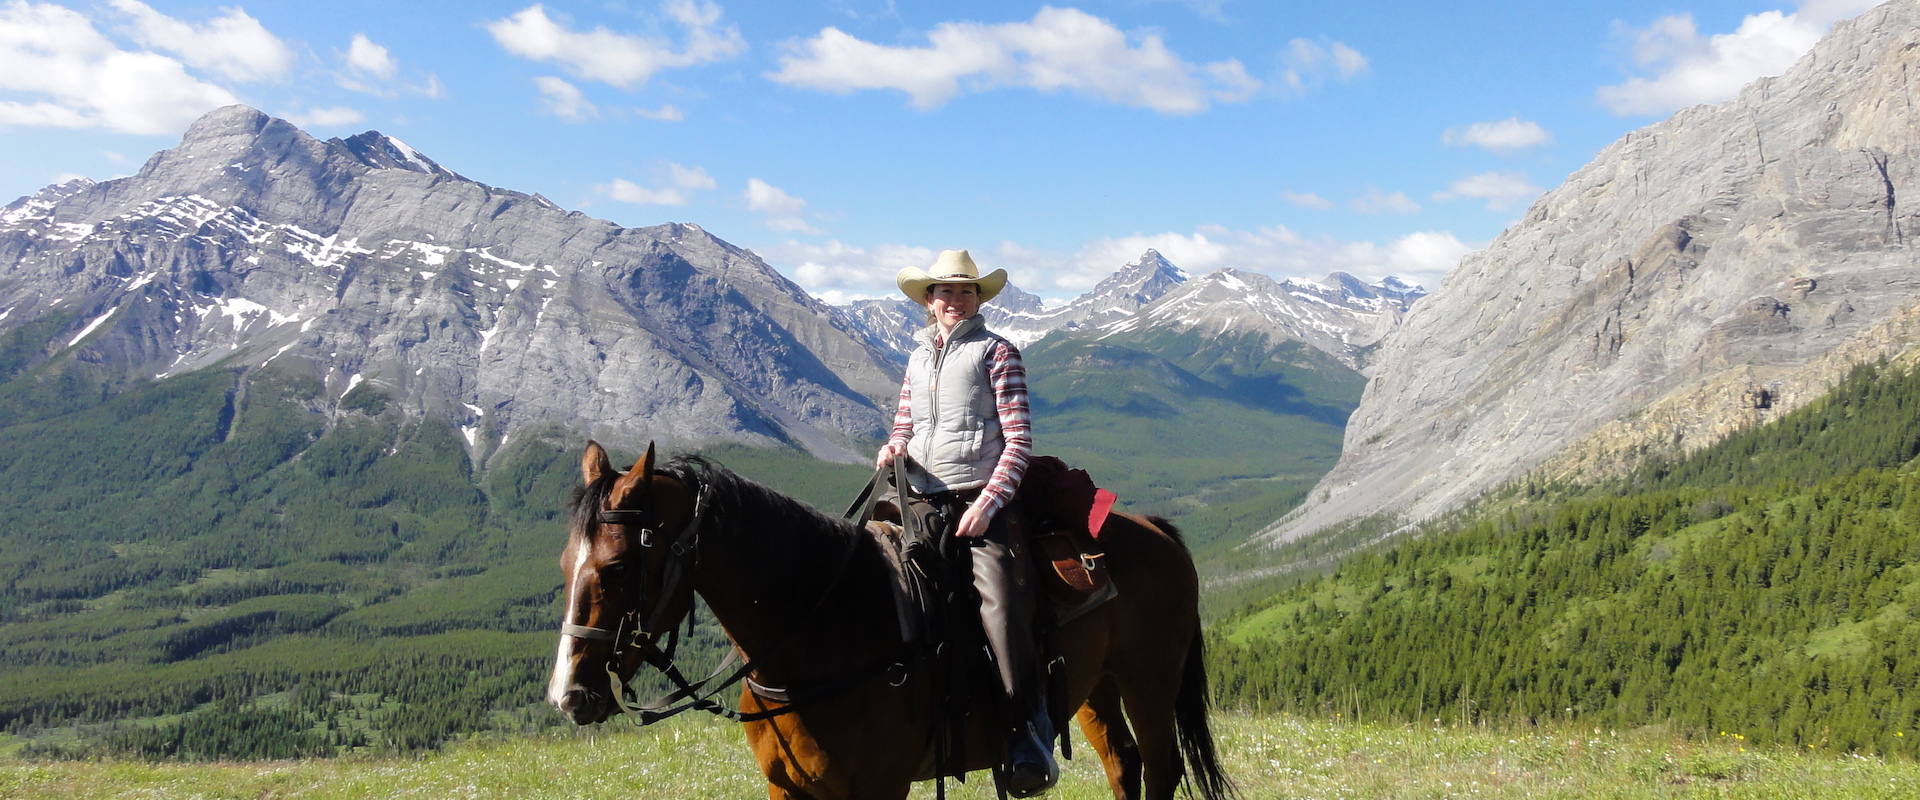 Banff National Park Horseback Riding, Canadian Rockies